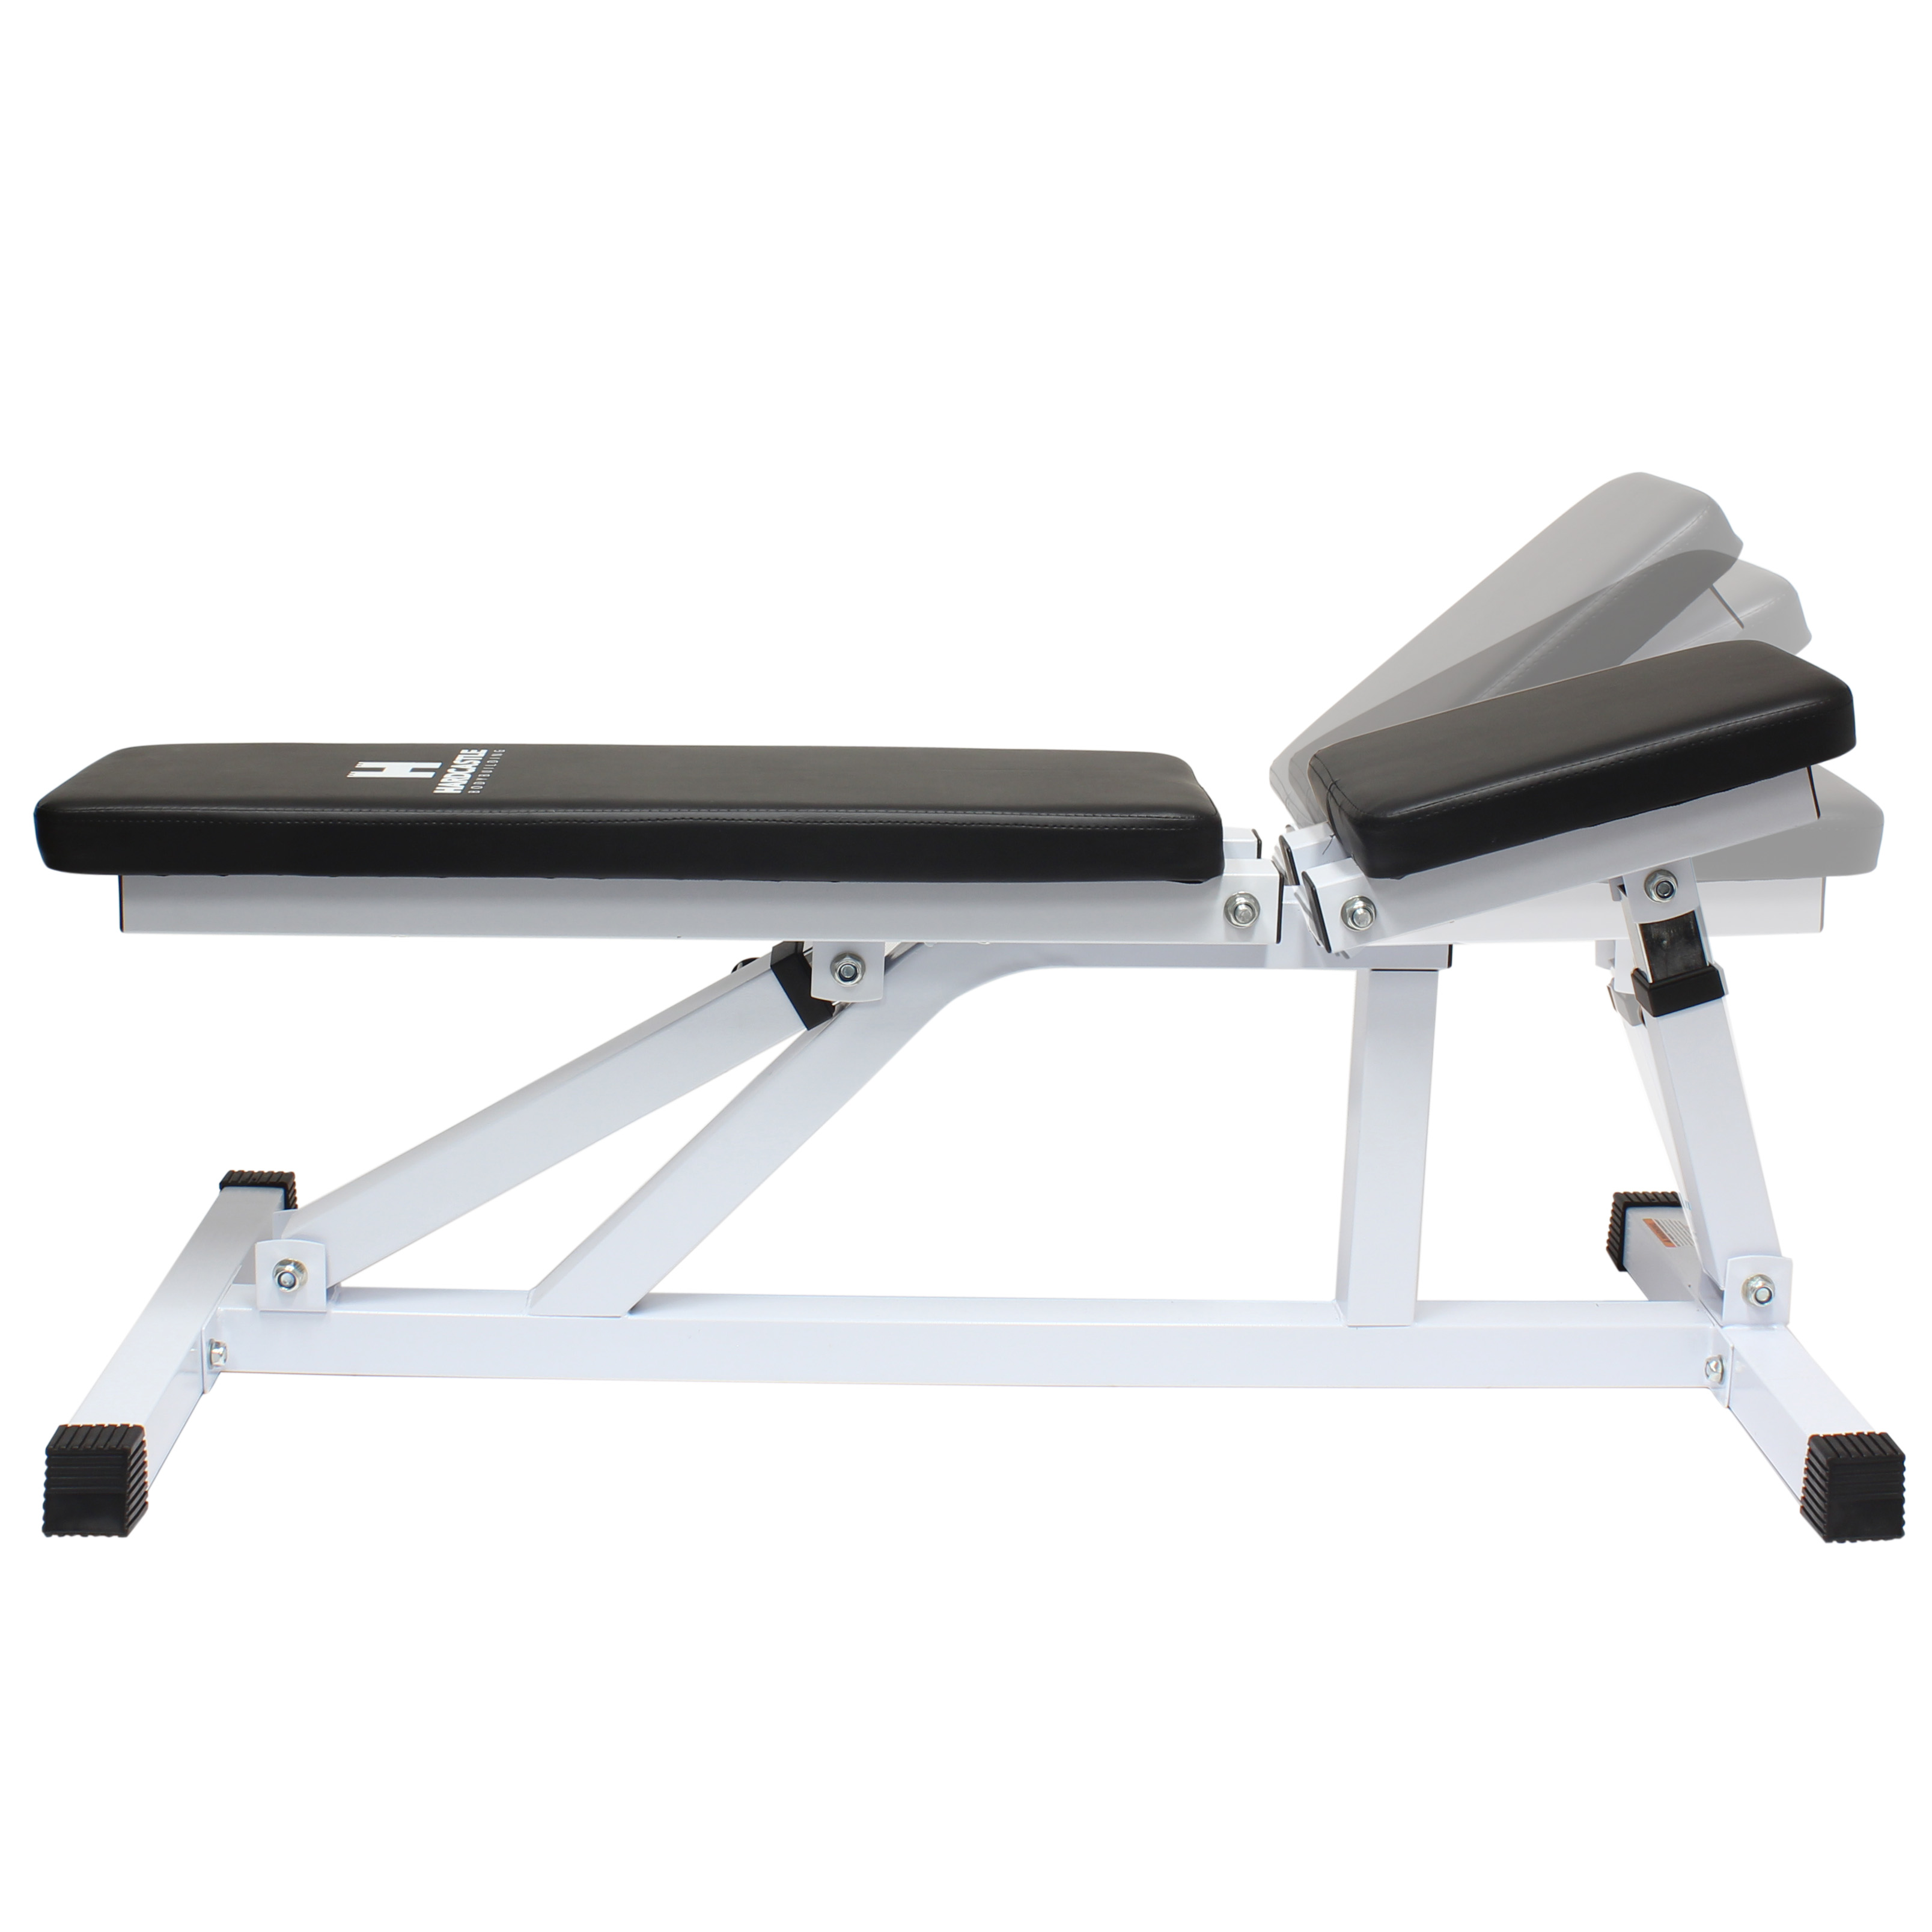 White Adjustable Flat Incline Home Gym Dumbbell Workout Weight Bench Heavy Duty